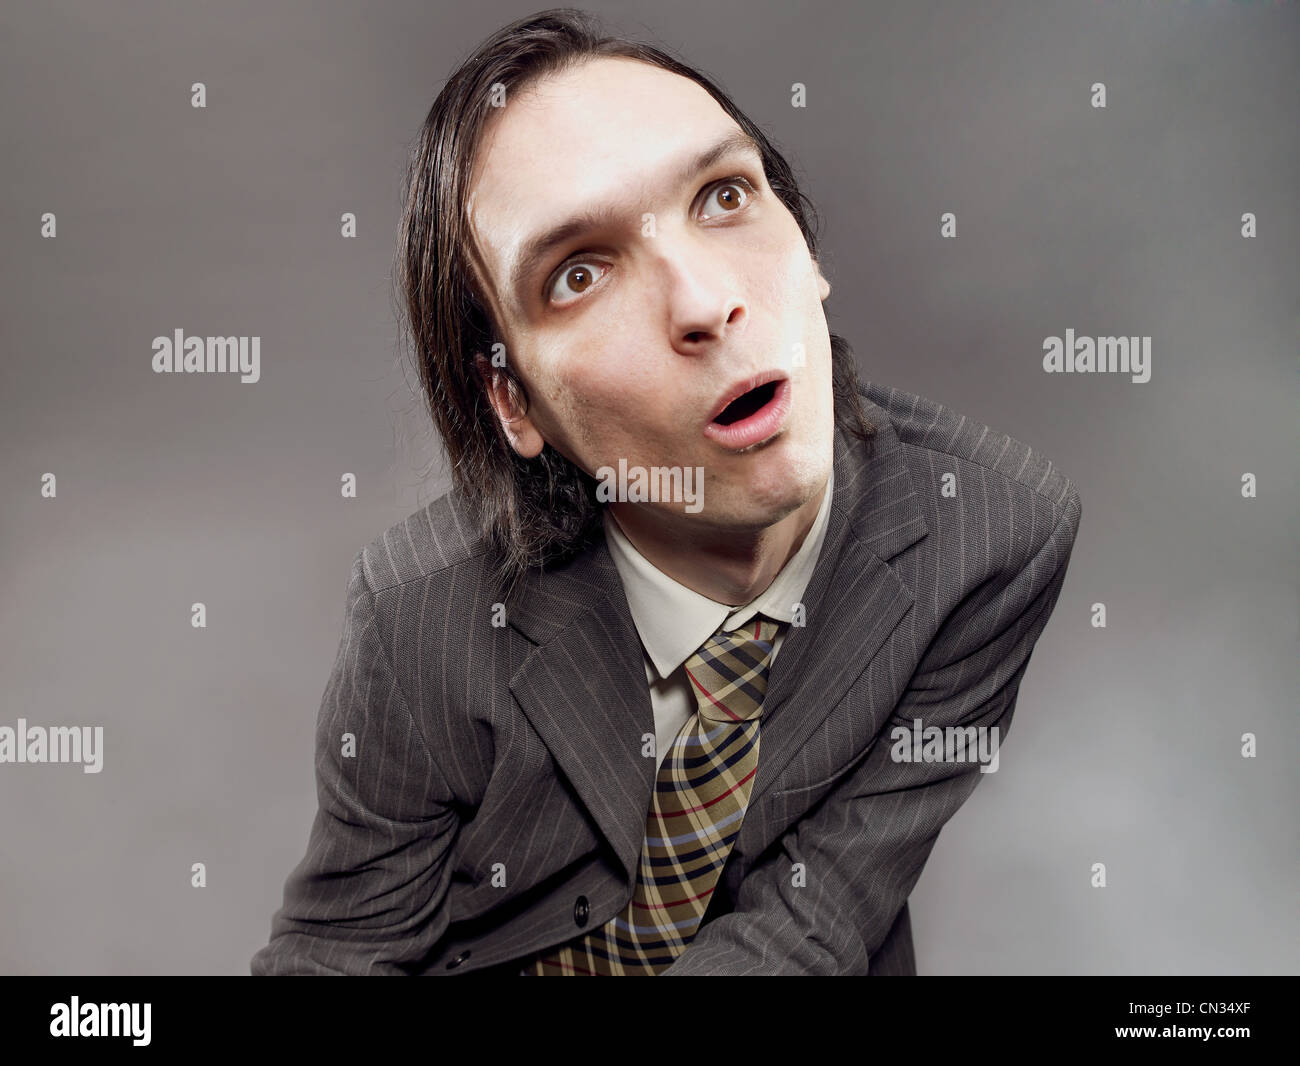 Businessman with blank expression - Stock Image